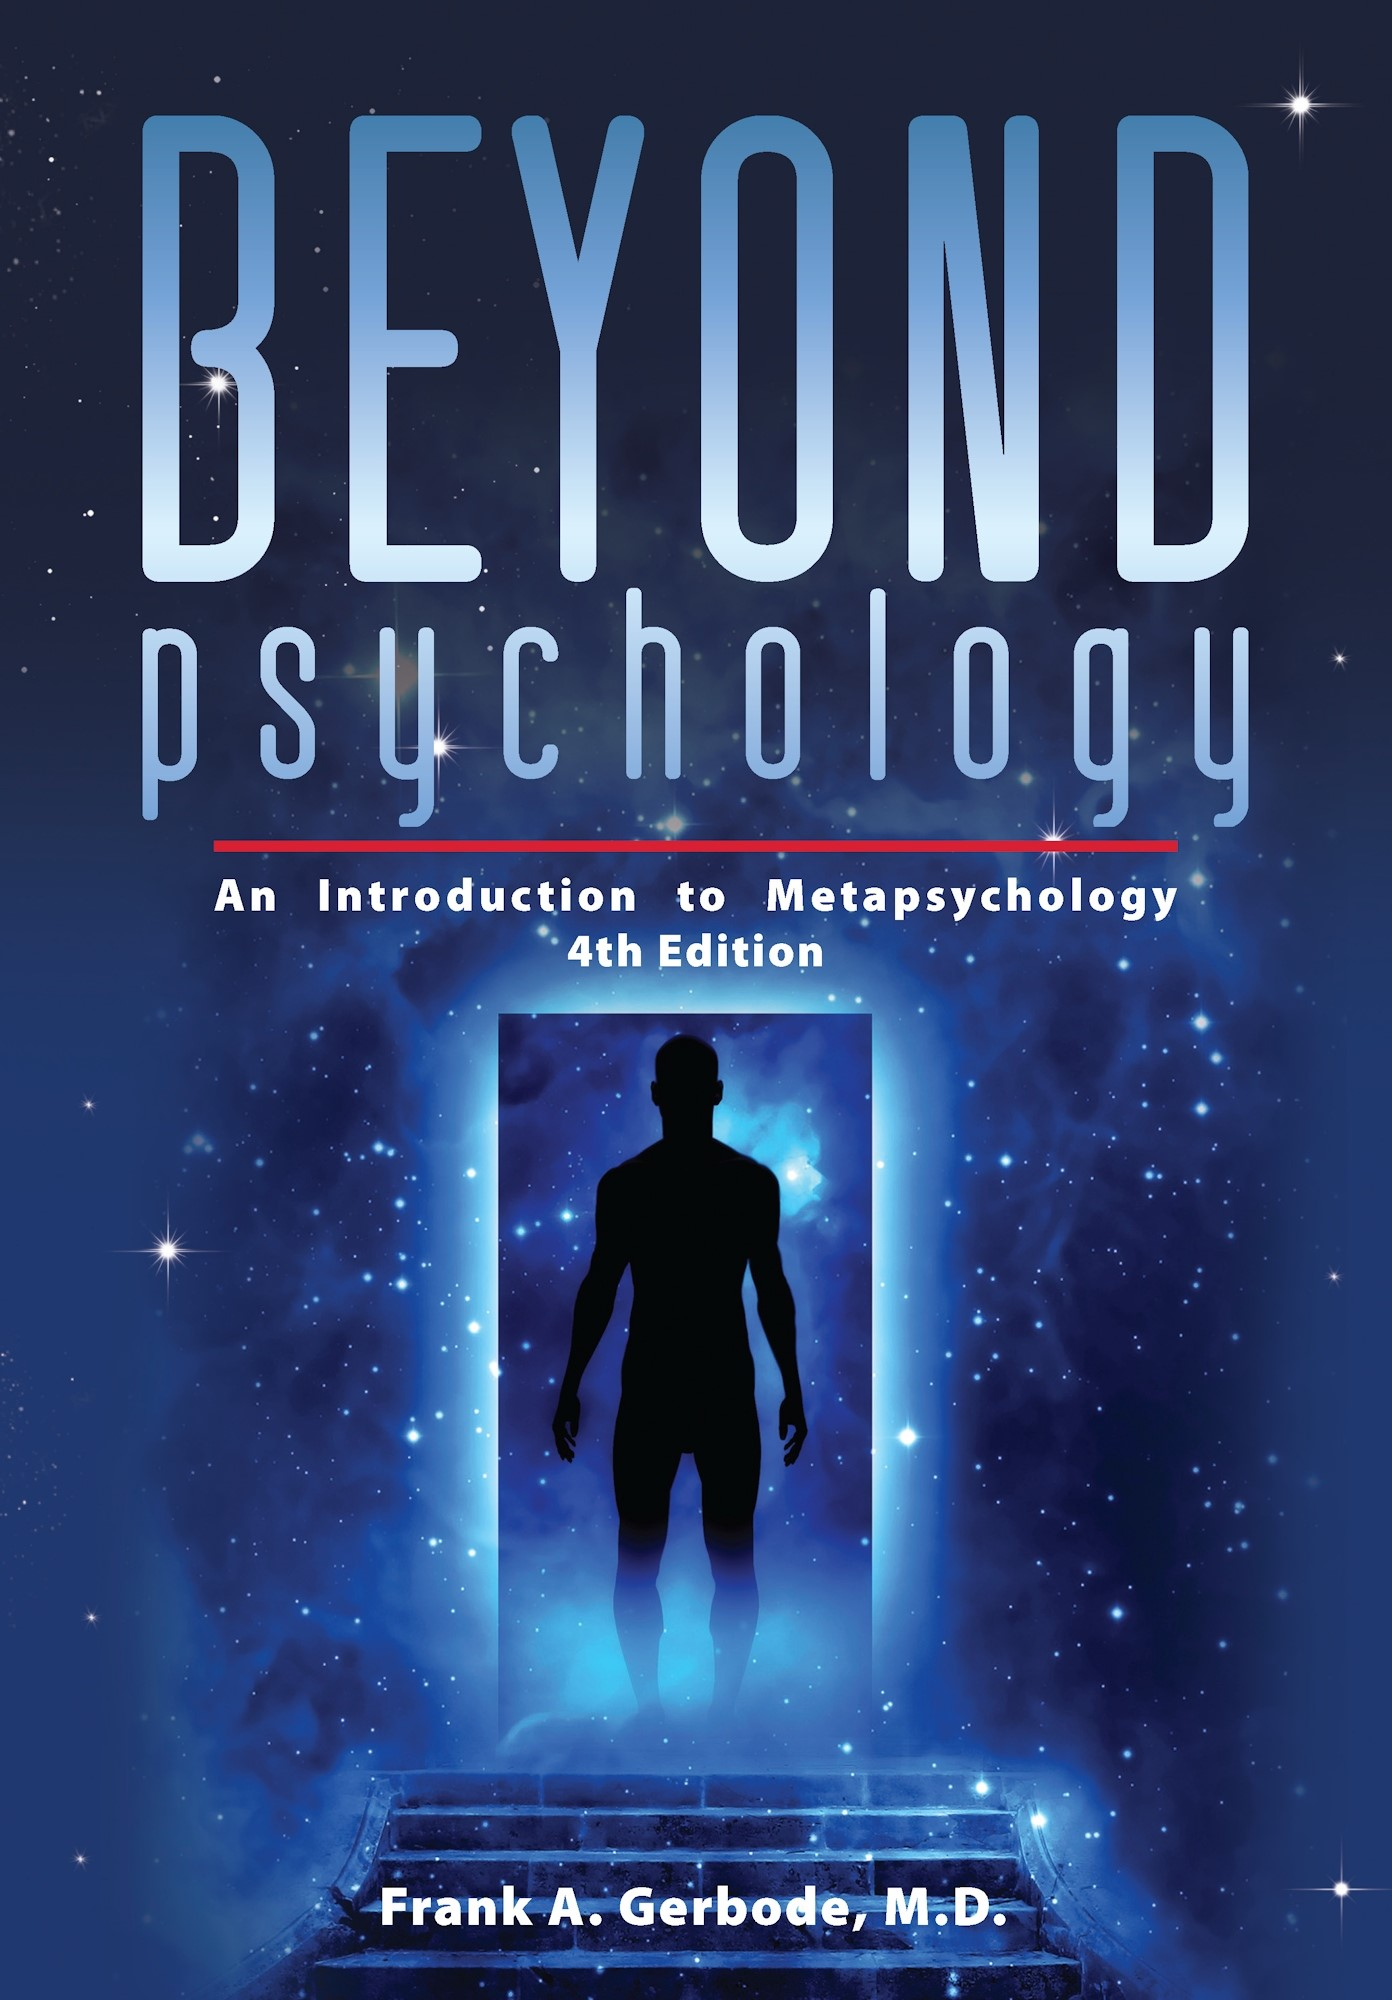 Beyond Psychology: An Introduction to Metapsychology - 4th Ed, Autor: Frank A. Gerbode, M.D